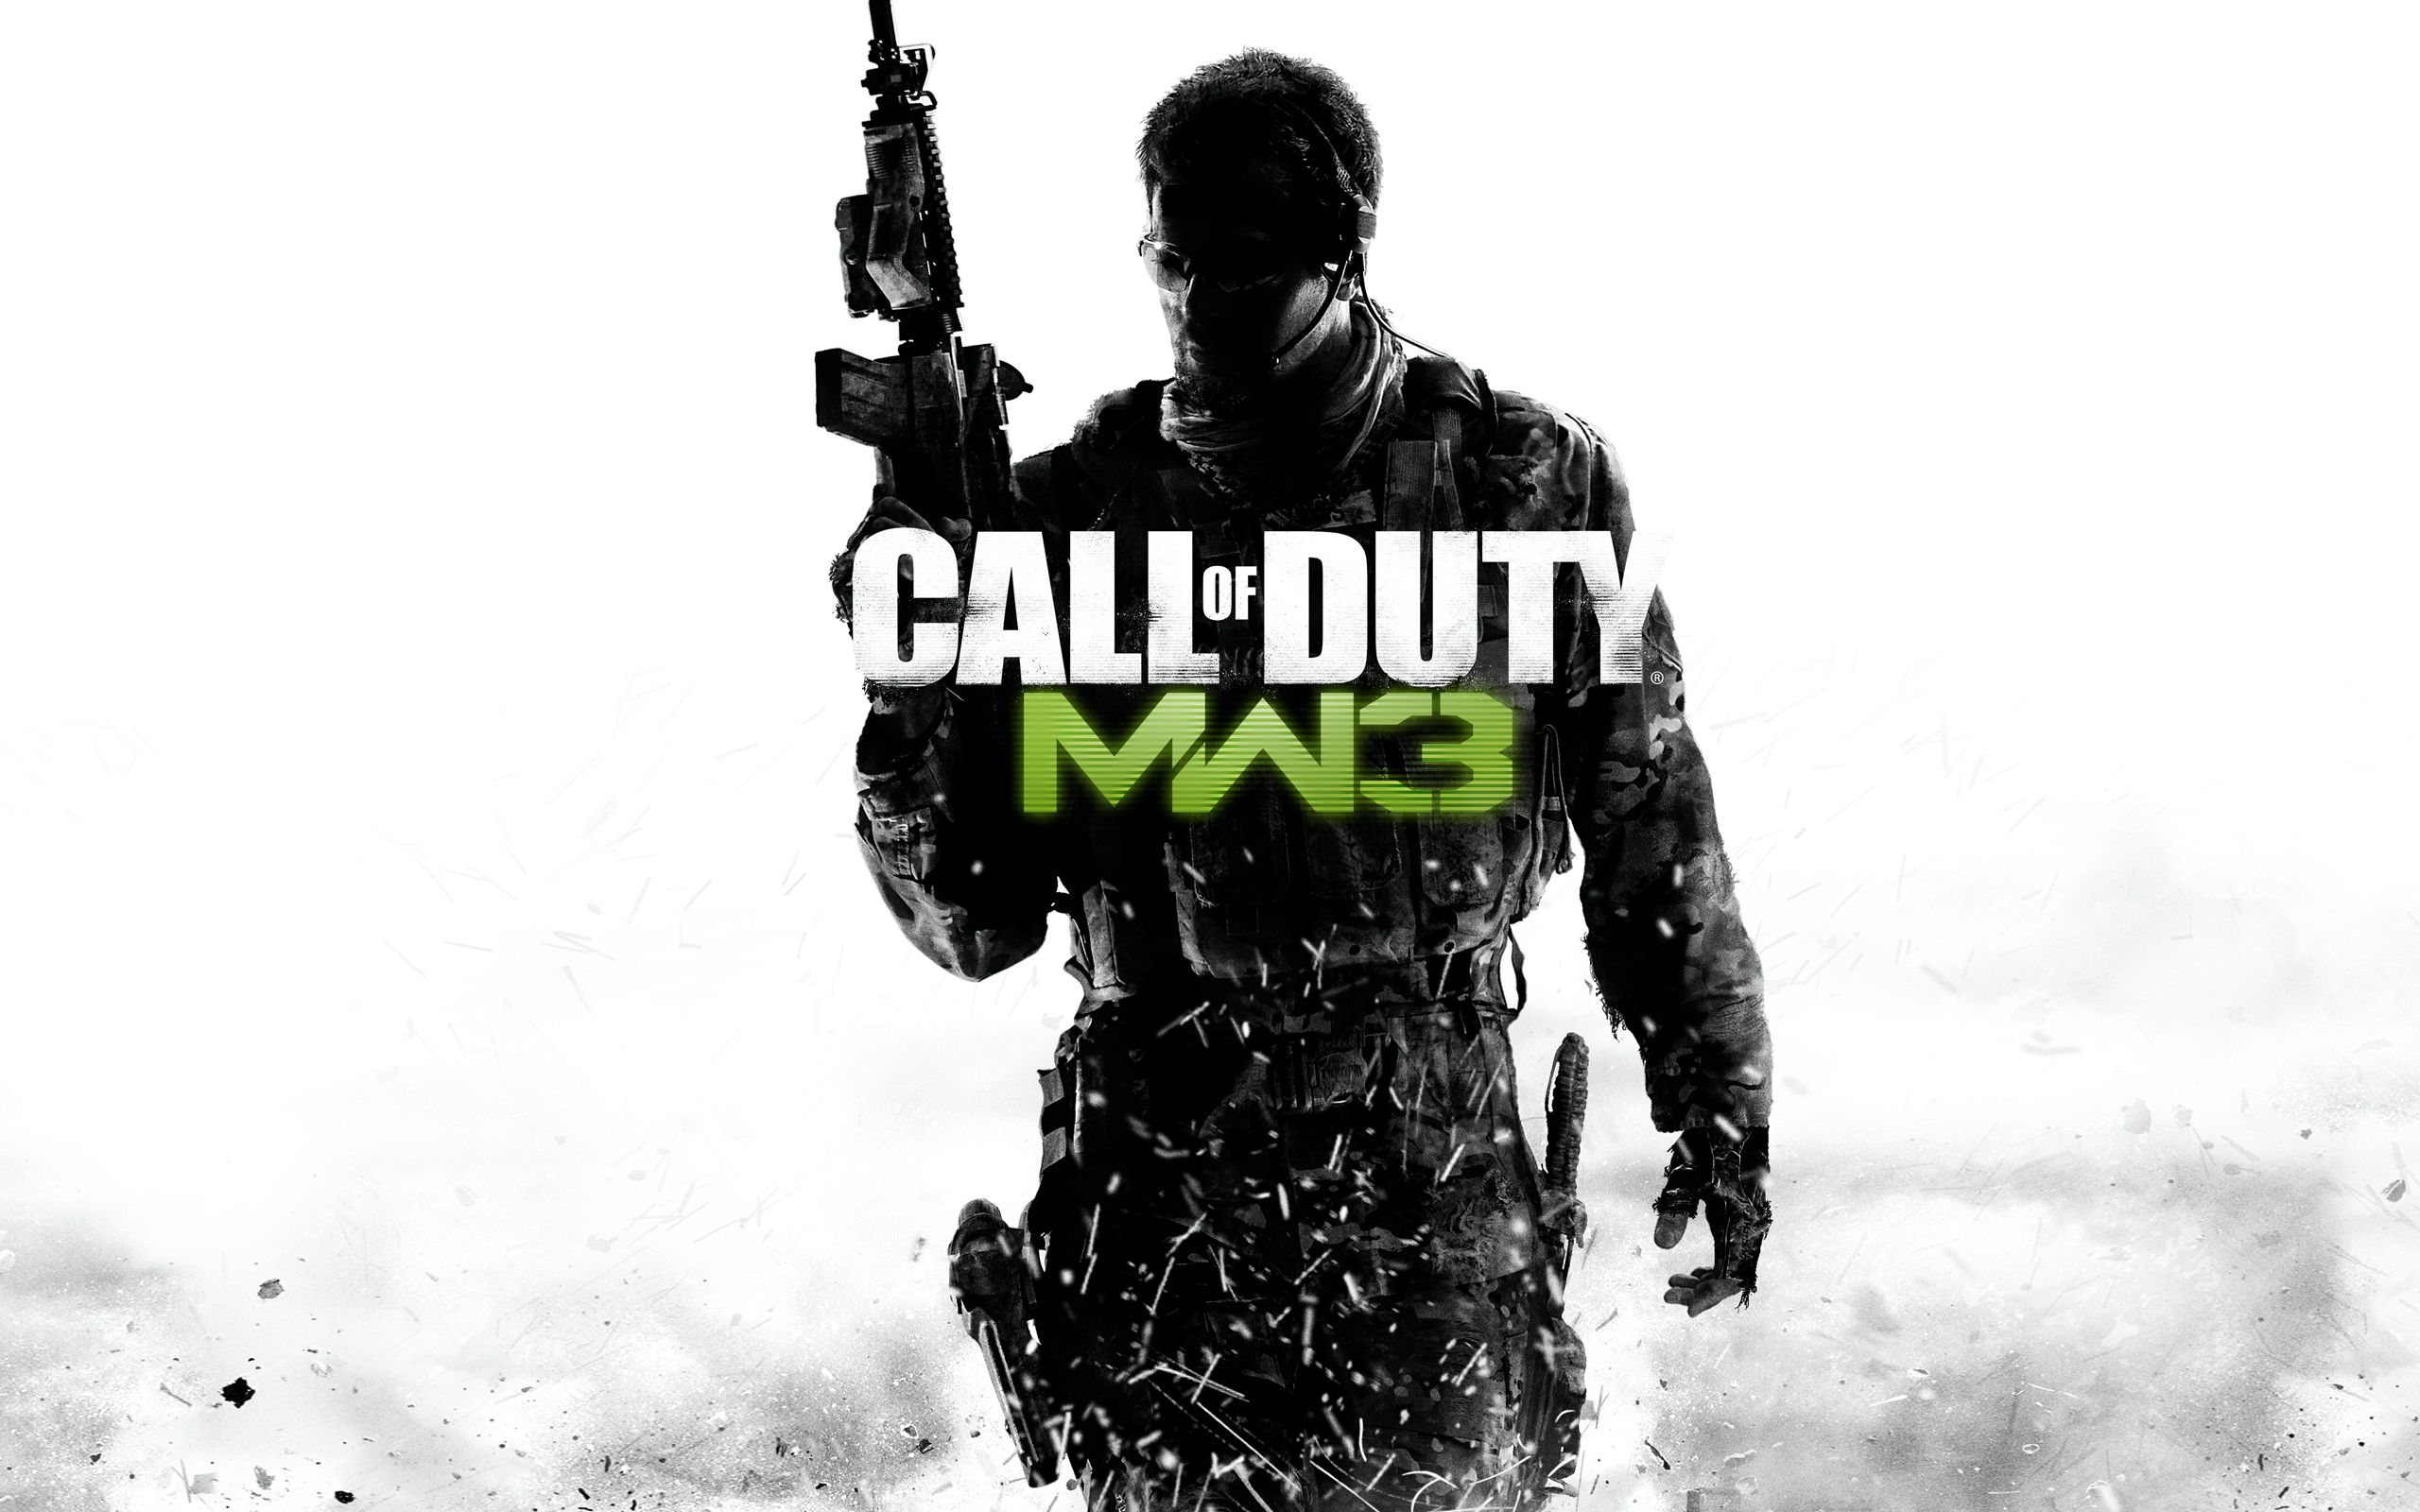 2560x1600 call of duty modern warfare 3 images cod HD wallpaper and background ...